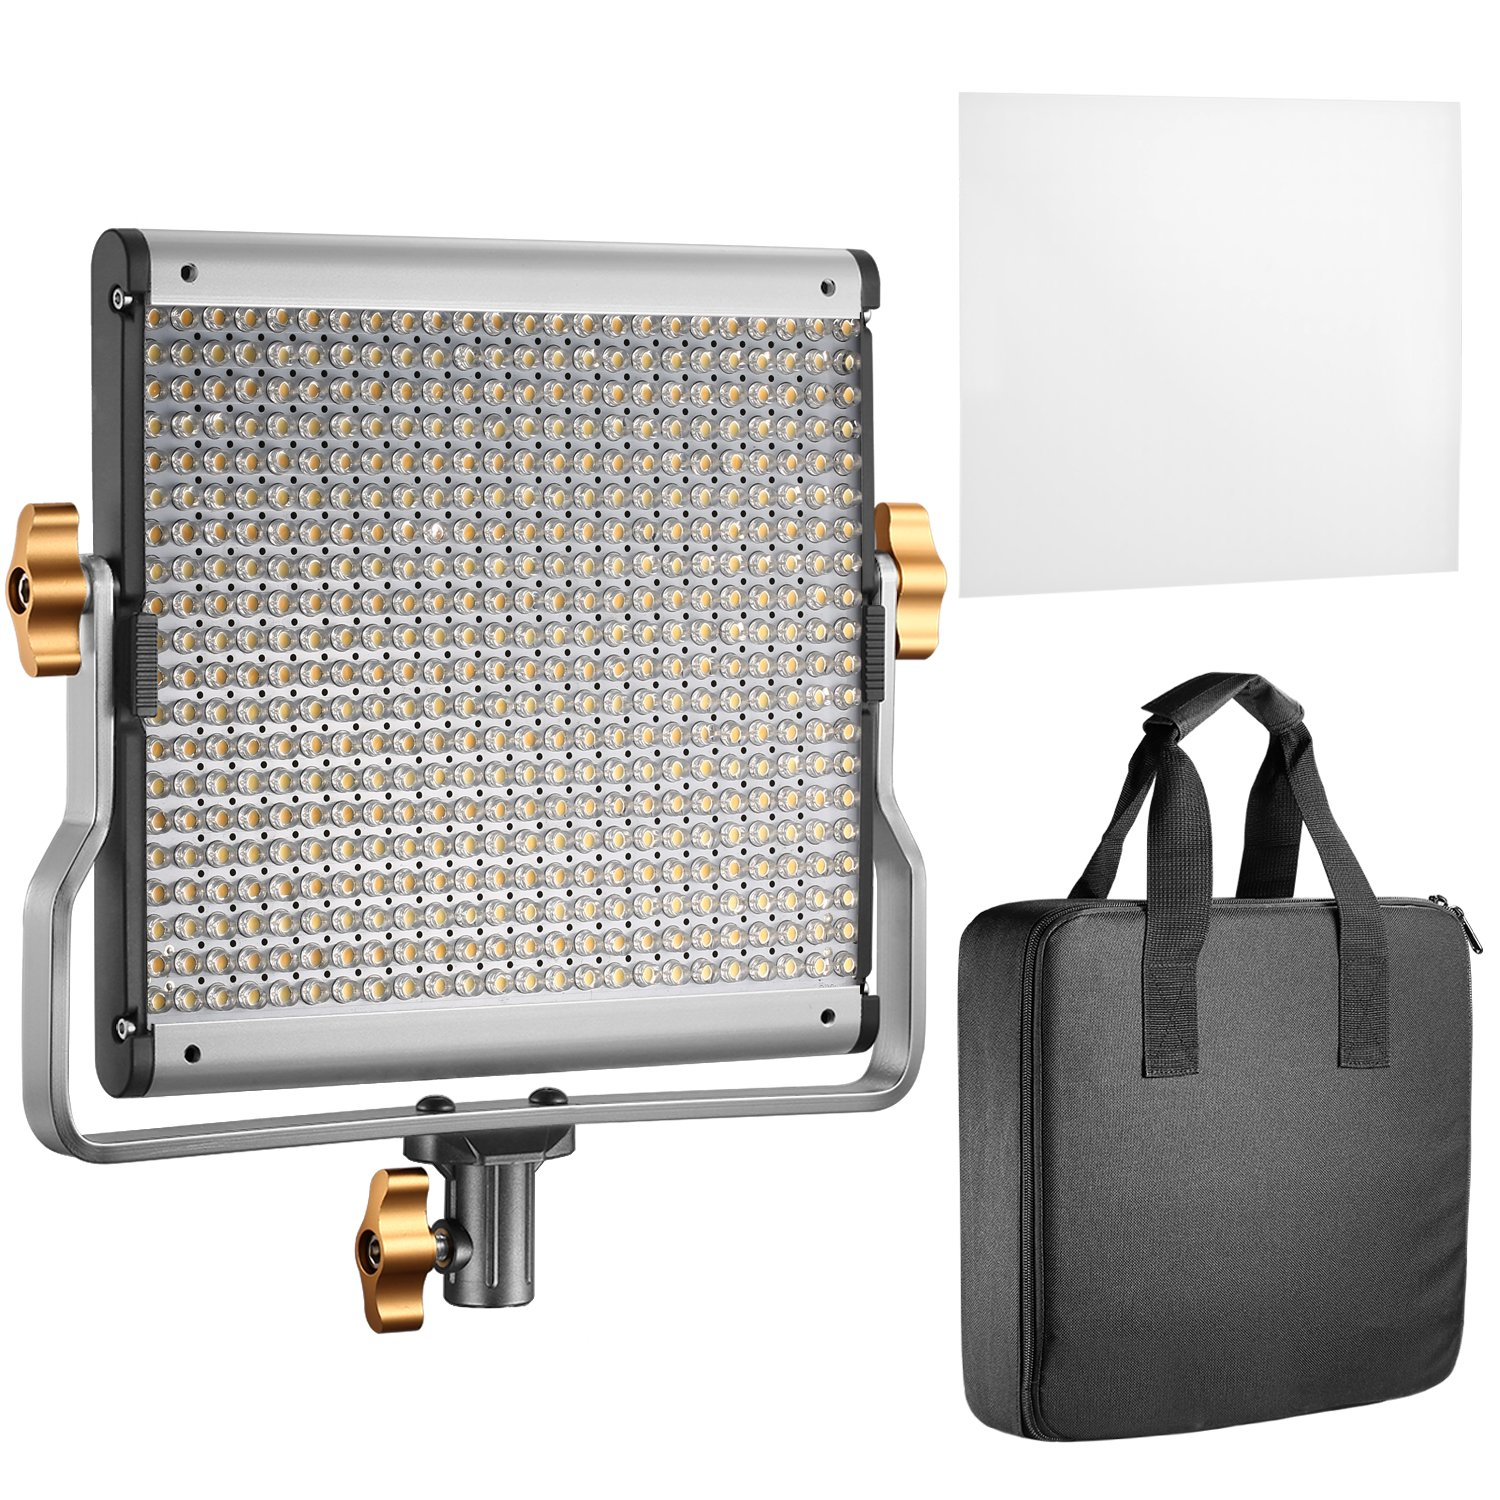 Neewer Dimmable Bi-Color LED with U Bracket Professional Video Light for Studio, YouTube Outdoor Video Photography Lighting Kit, Durable Metal Frame, 480 LED Beads, 3200-5600K, CRI 96+ by Neewer